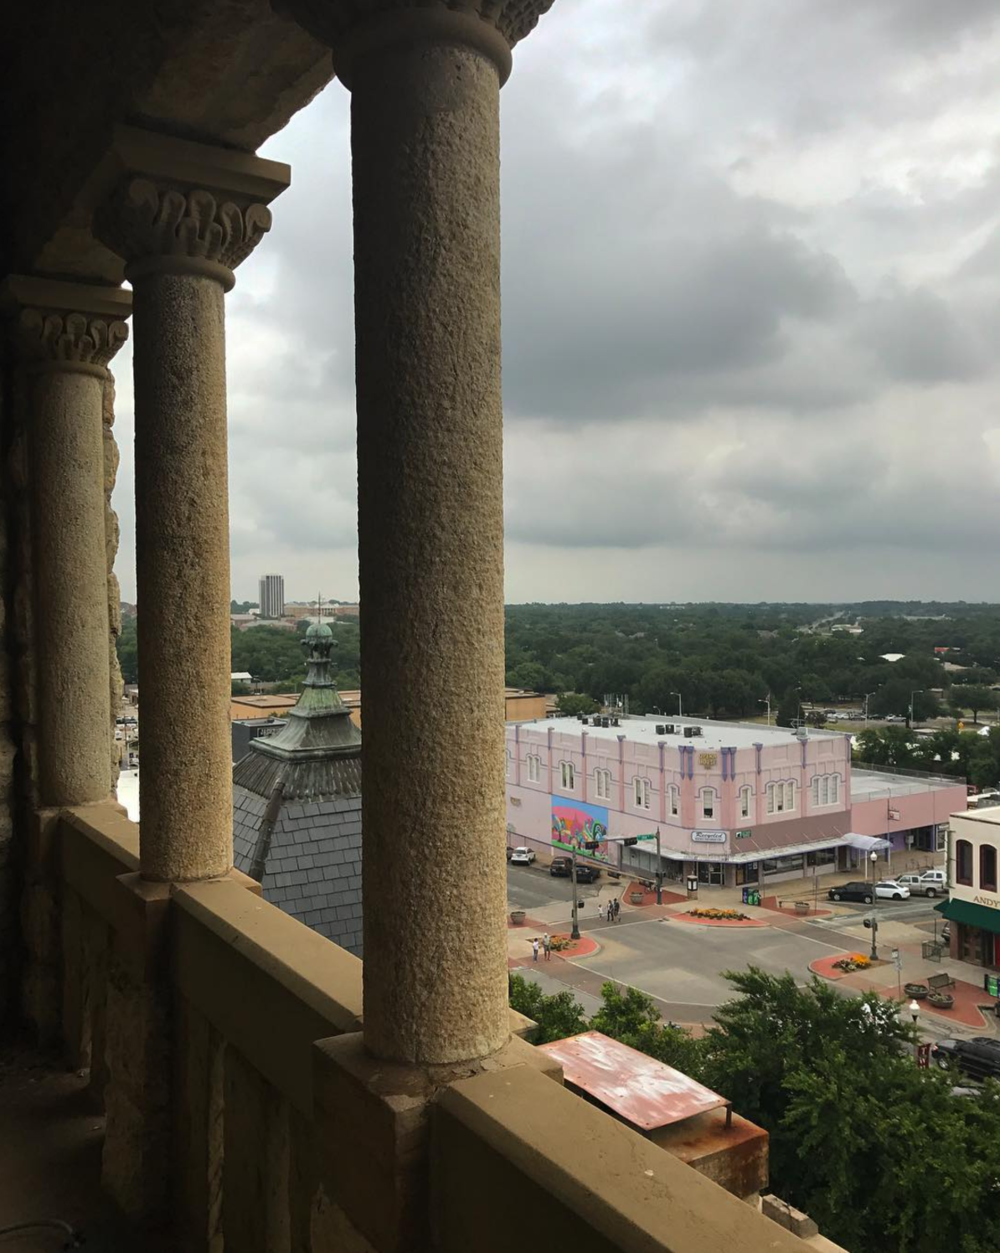 @mohunt on the top of the Denton County Courthouse looking out over the Opera House.